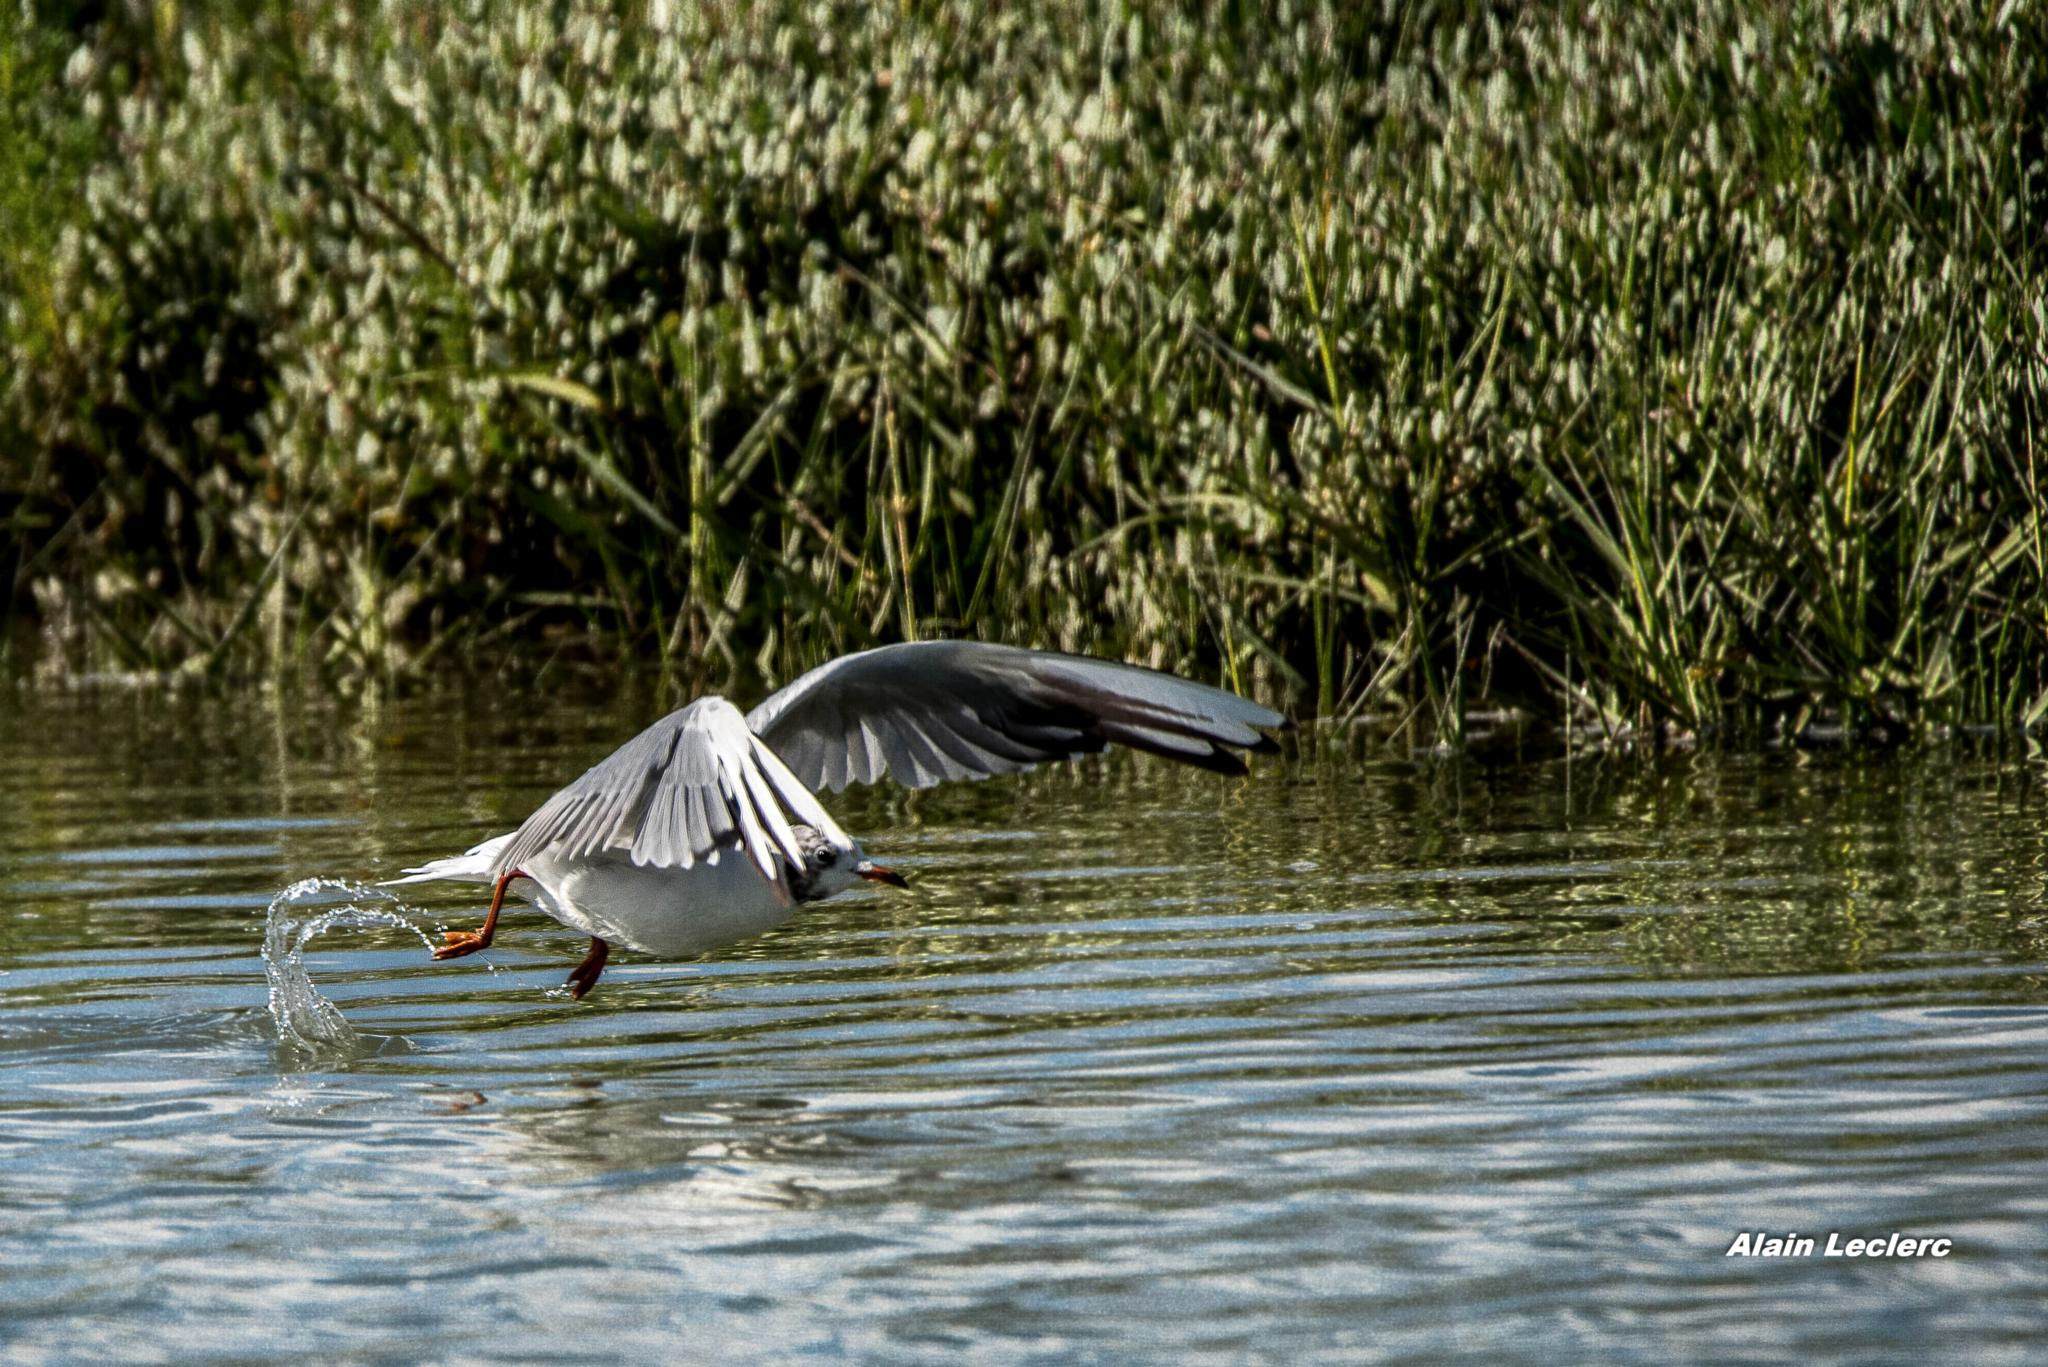 mouette rieuse (7674) by leclercalainmail